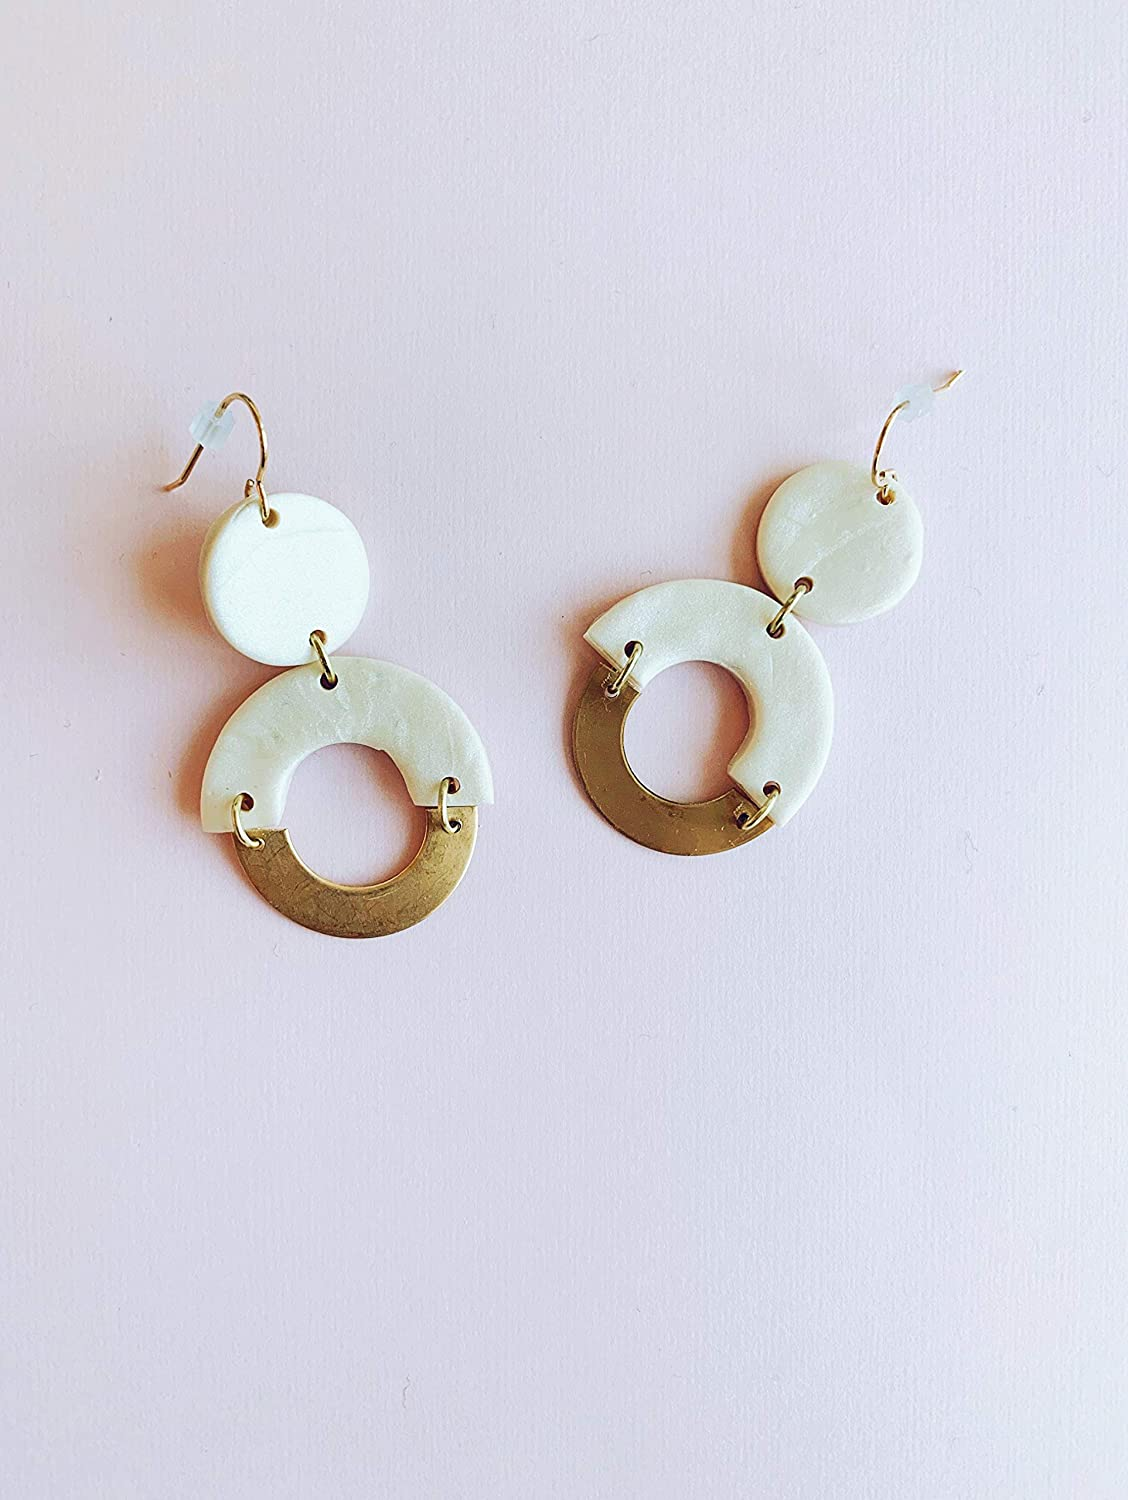 White Clay and Brass Earrings//Modern Abstract Dangle earrings//Lightweight Dangle and drop Hypo-allergenic statement earrings//gift for her